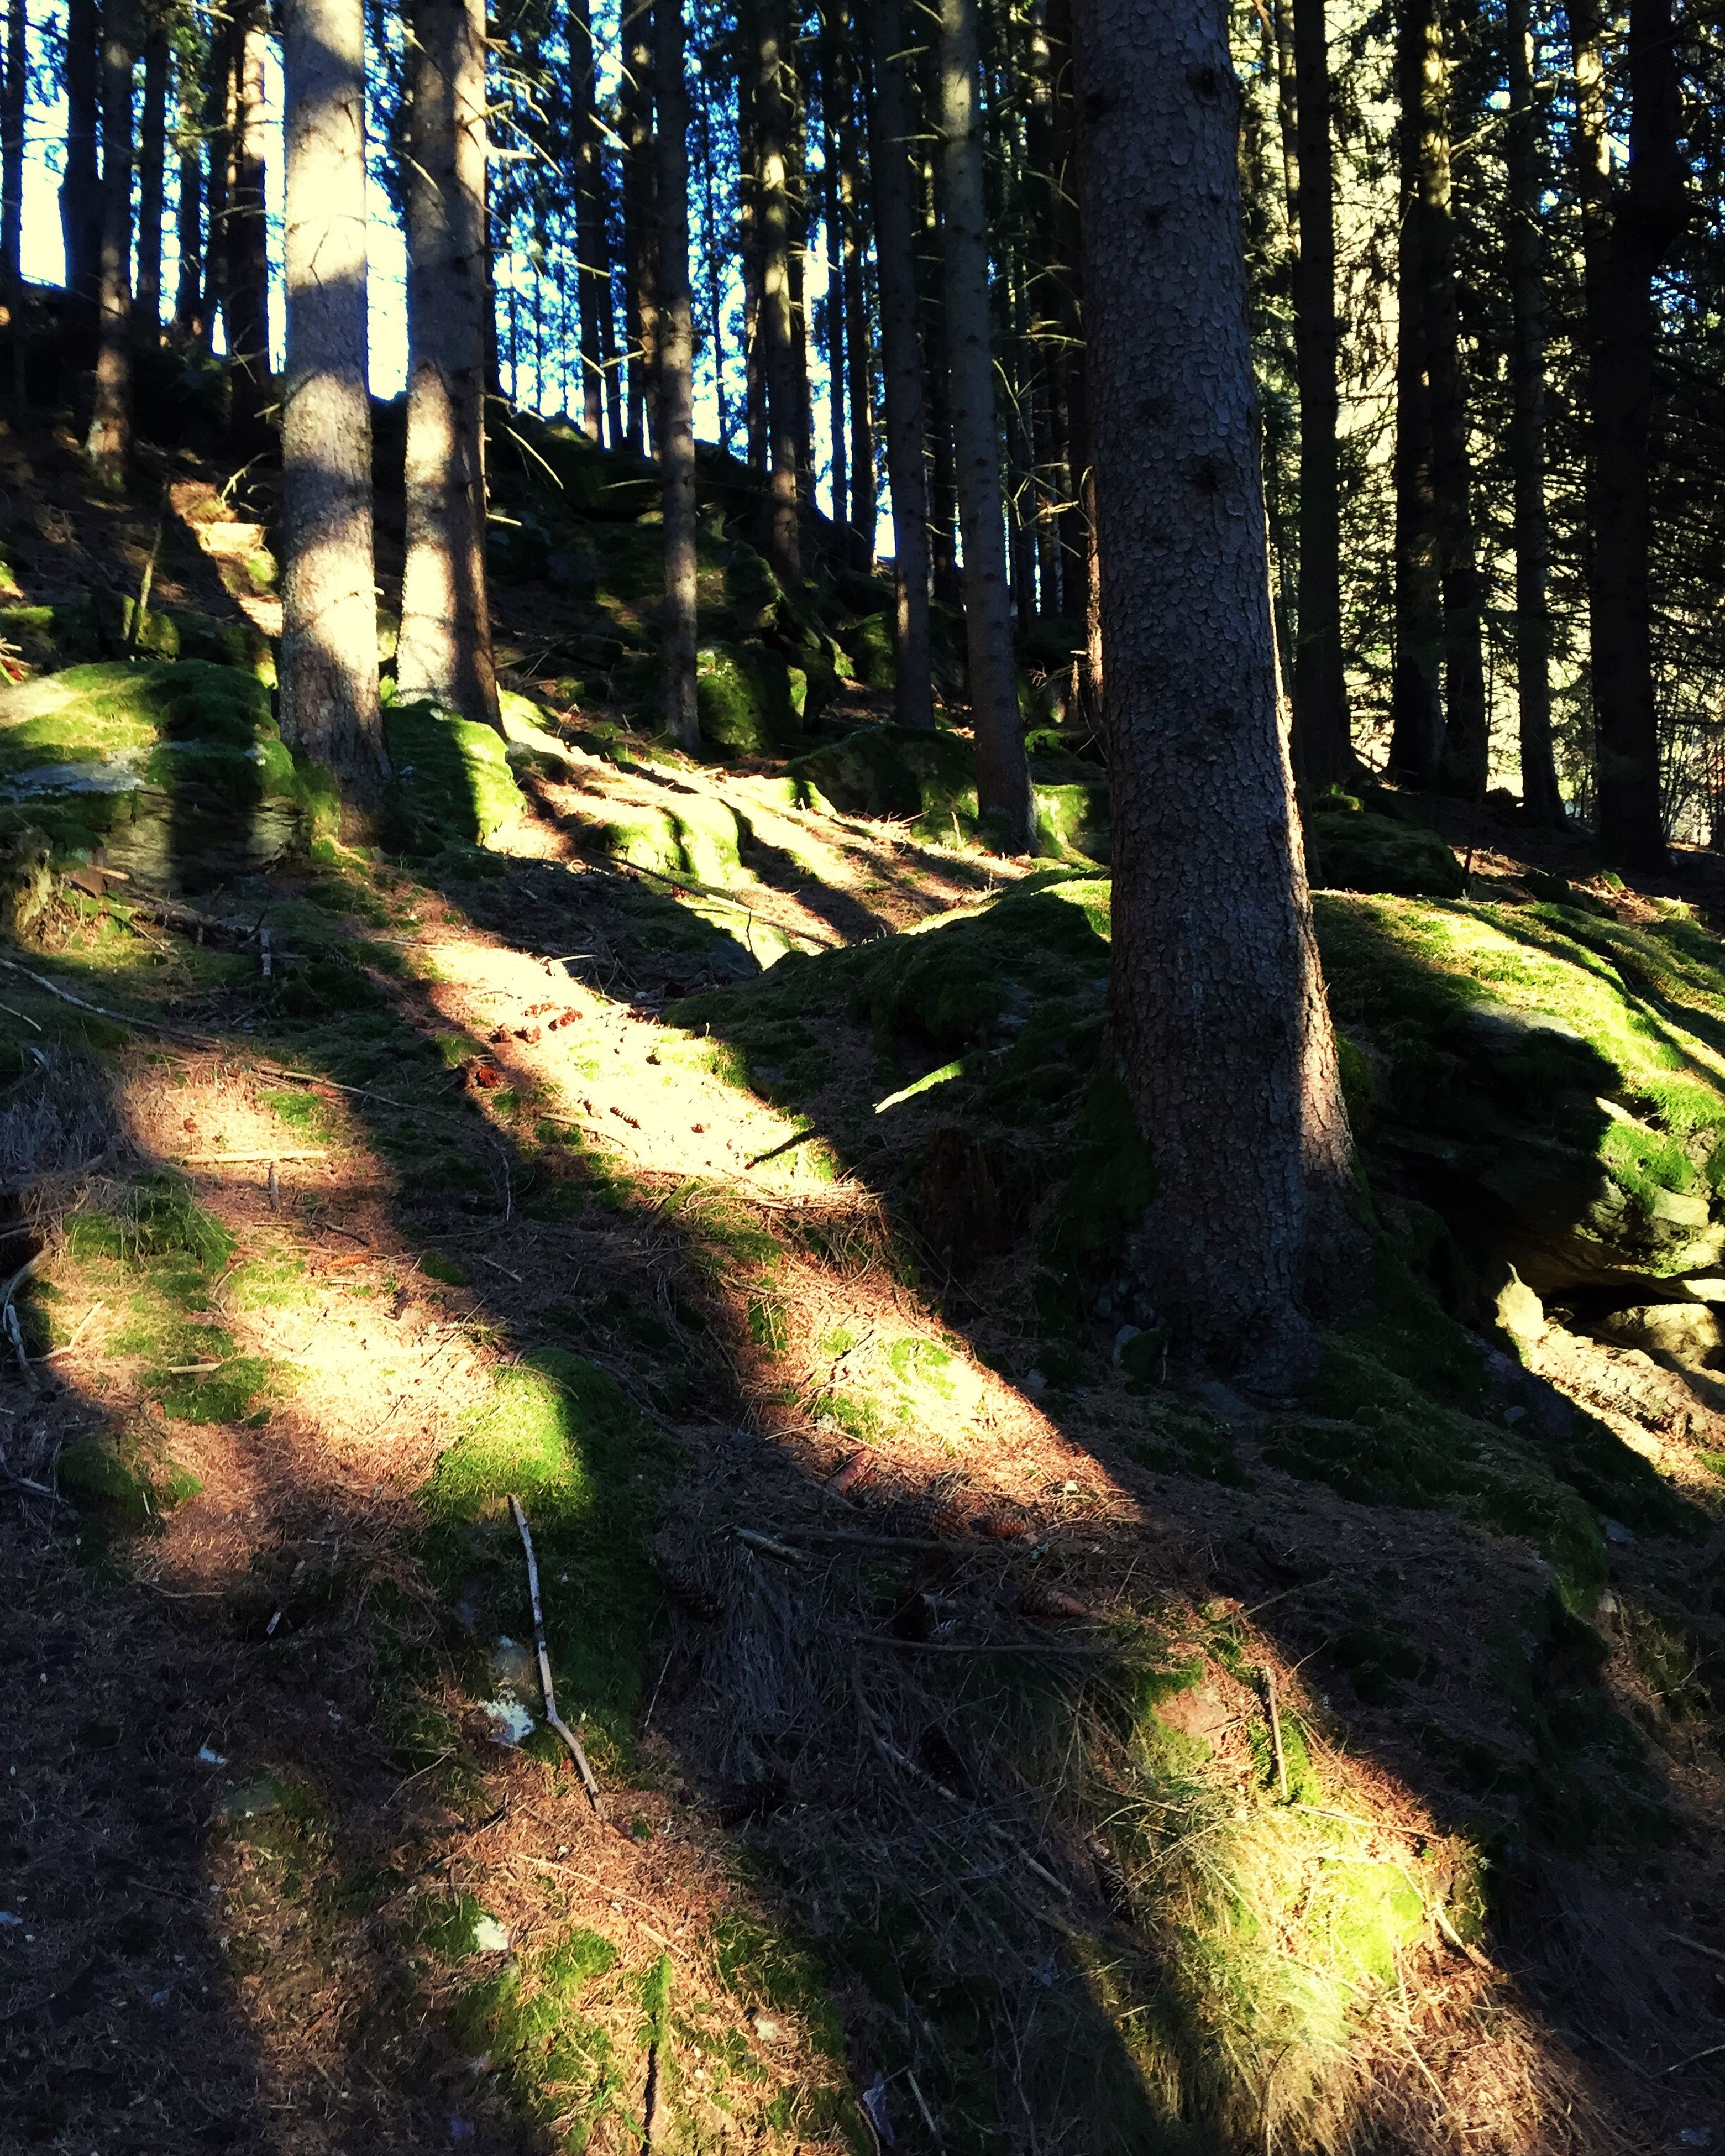 tree, tree trunk, tranquility, shadow, sunlight, growth, forest, tranquil scene, nature, woodland, grass, landscape, beauty in nature, scenics, non-urban scene, branch, day, field, outdoors, no people